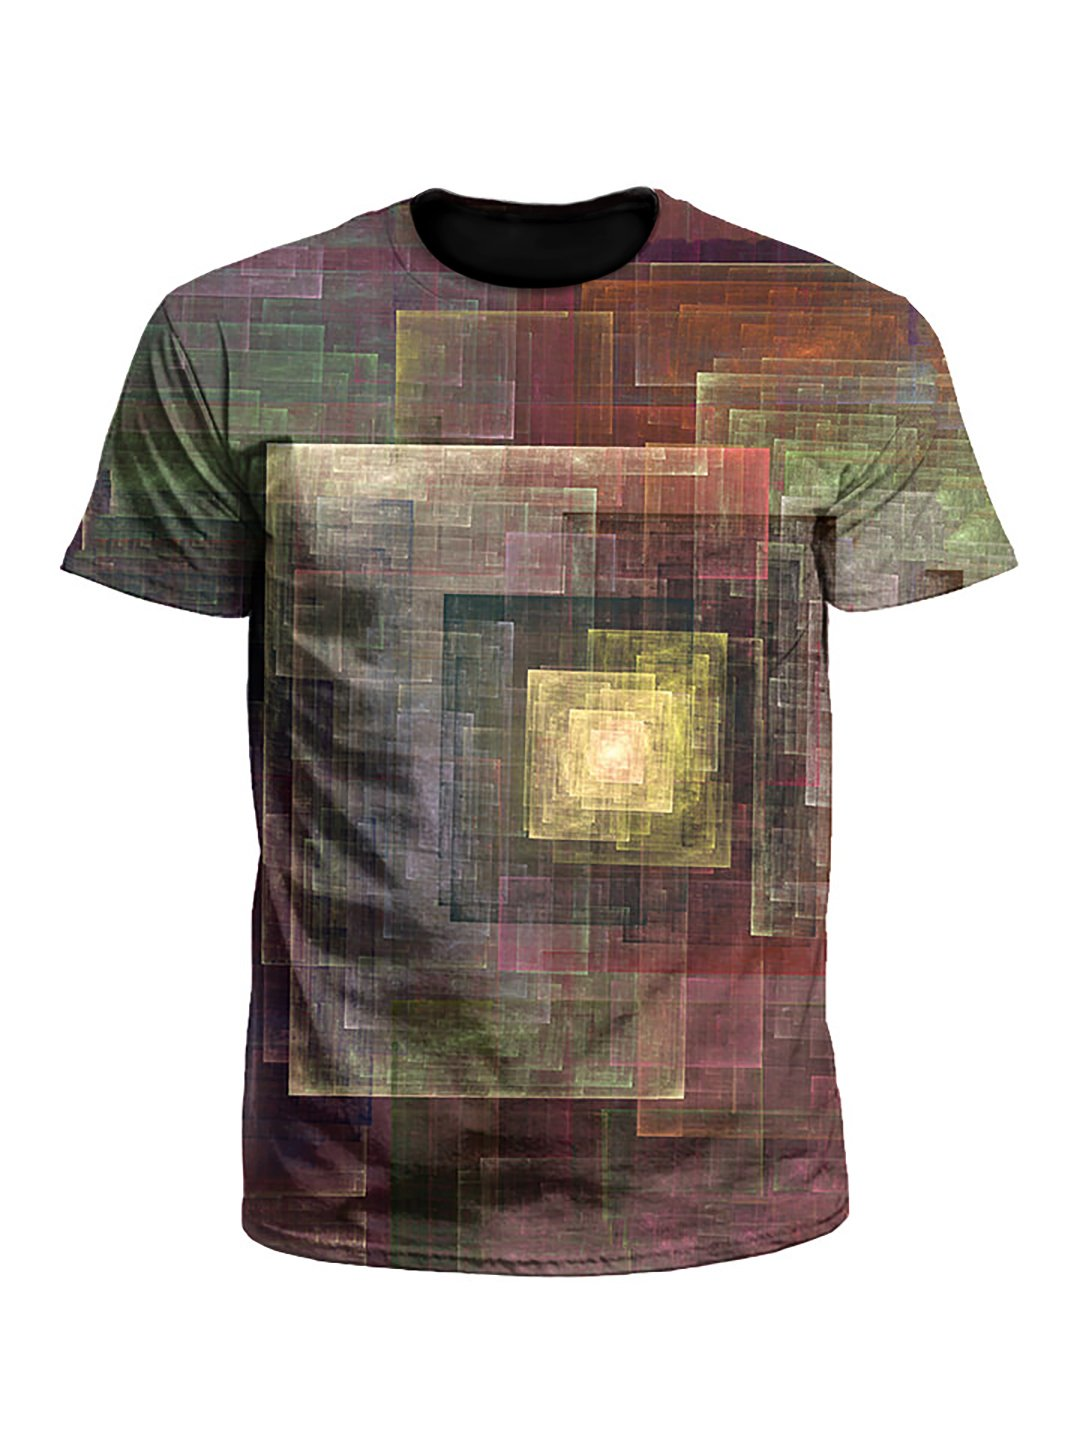 Colorful Impression Abstract Geometric Unisex T-Shirt